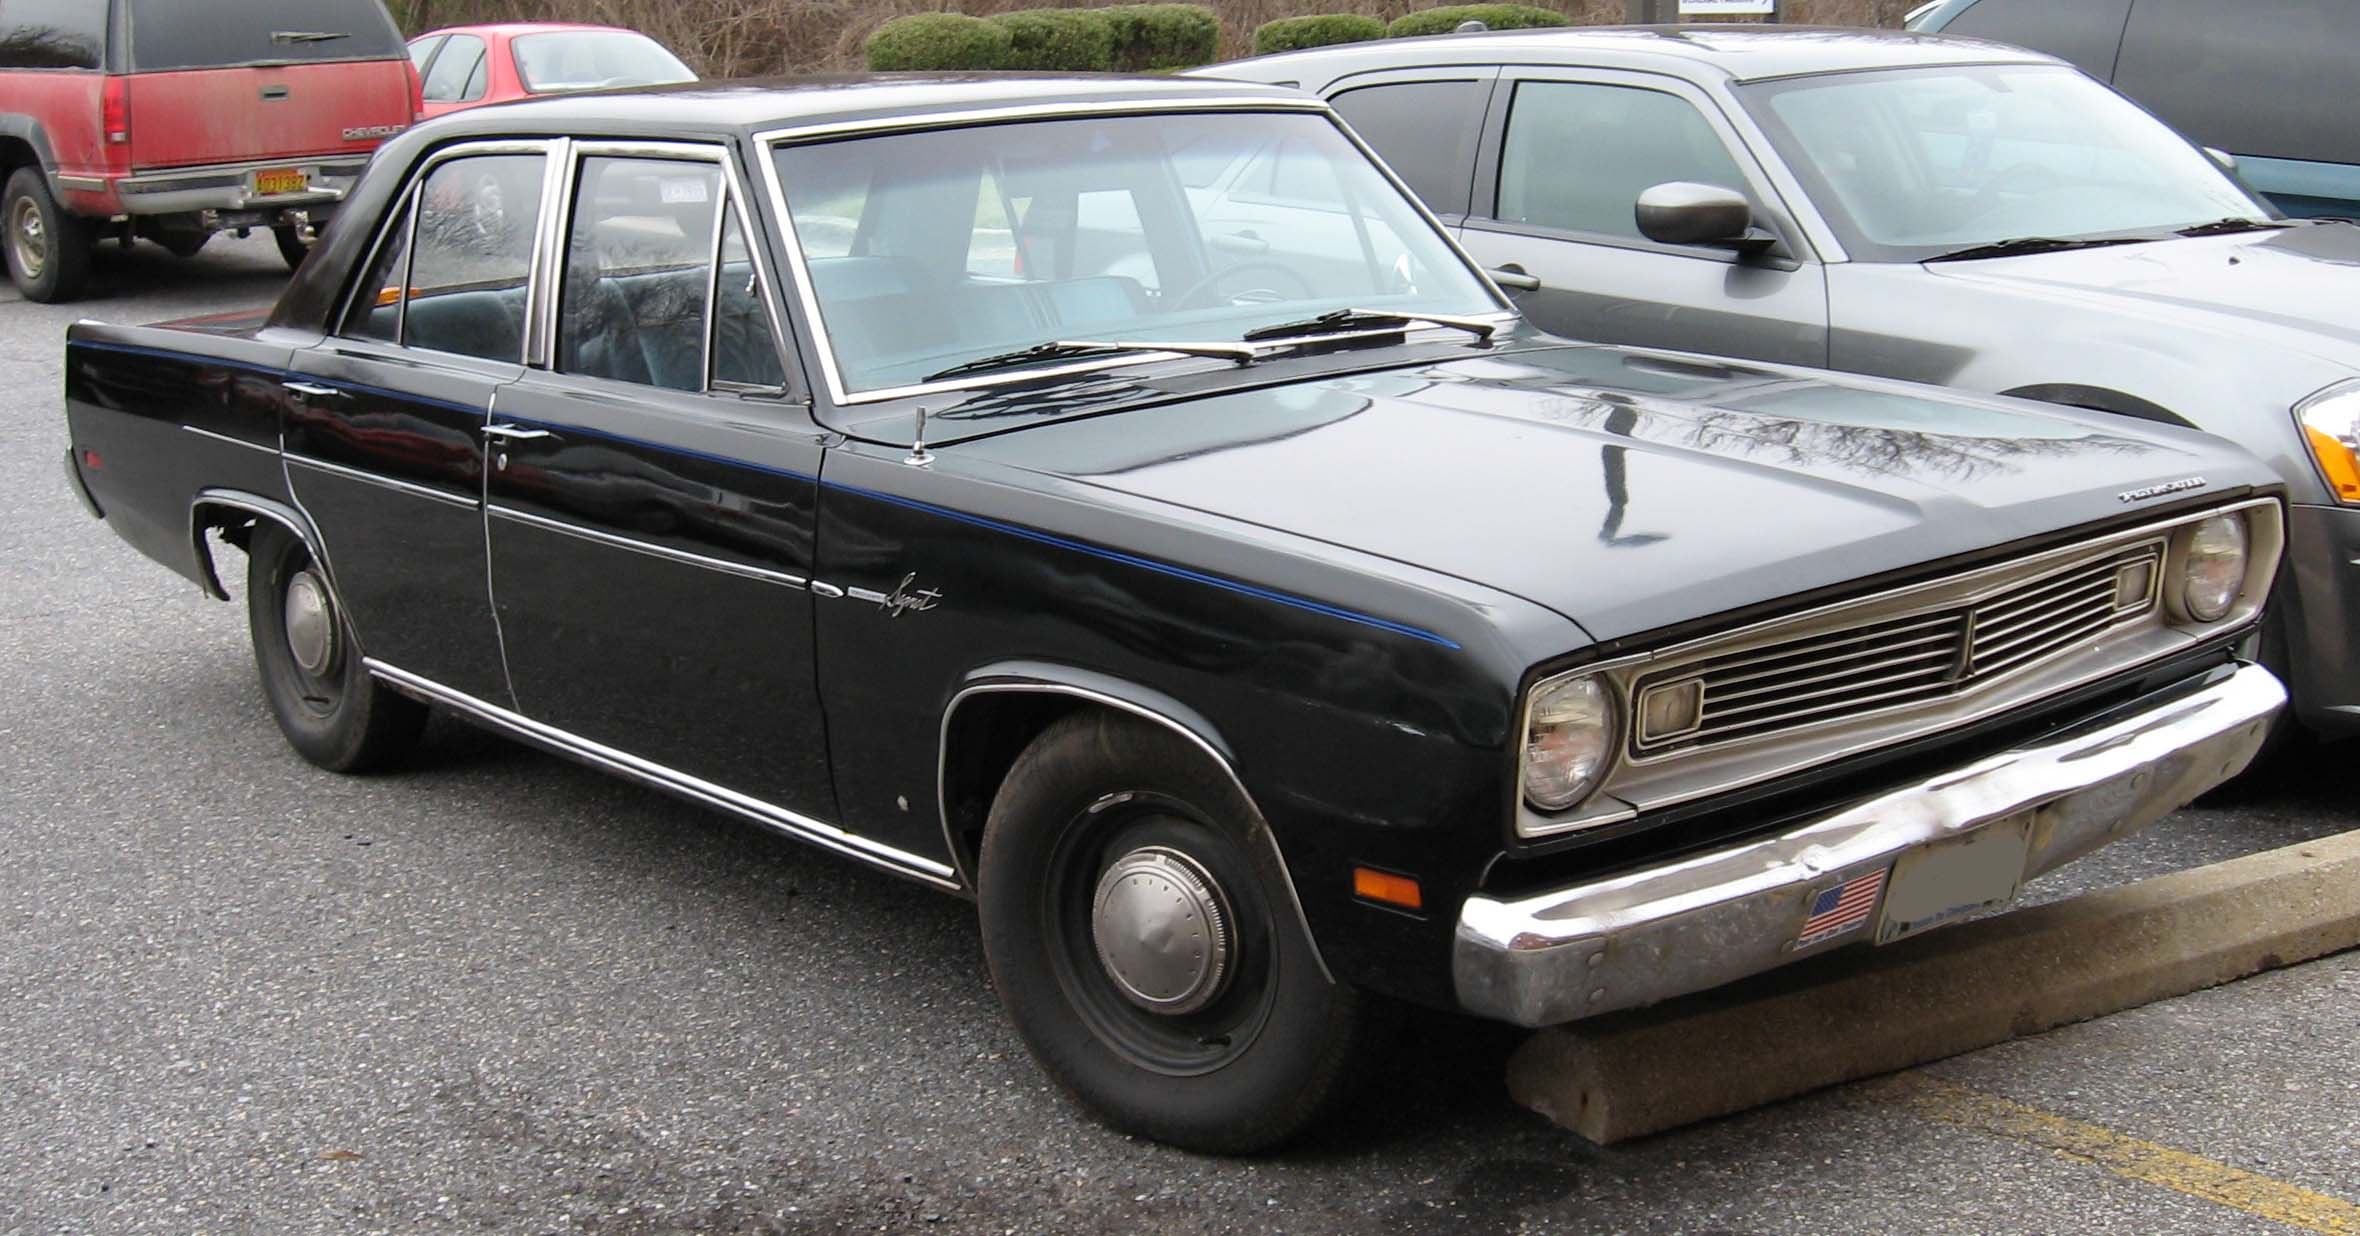 Year by year history and photos of the Chrysler/Plymouth Valiant ...